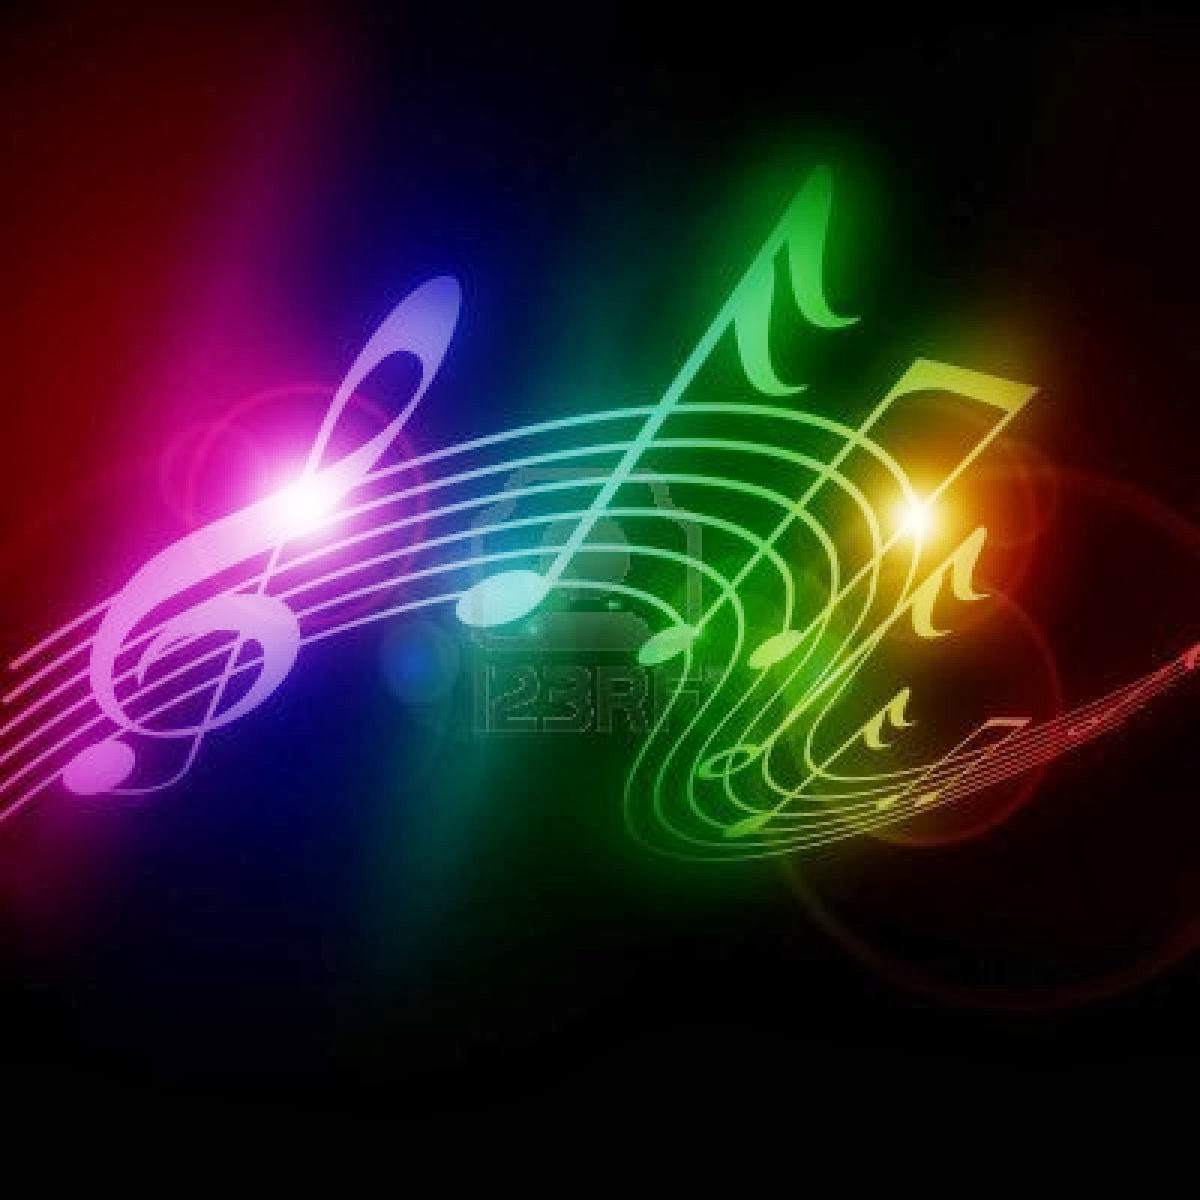 Neon Music Notes Wallpaper - WallpaperSafari